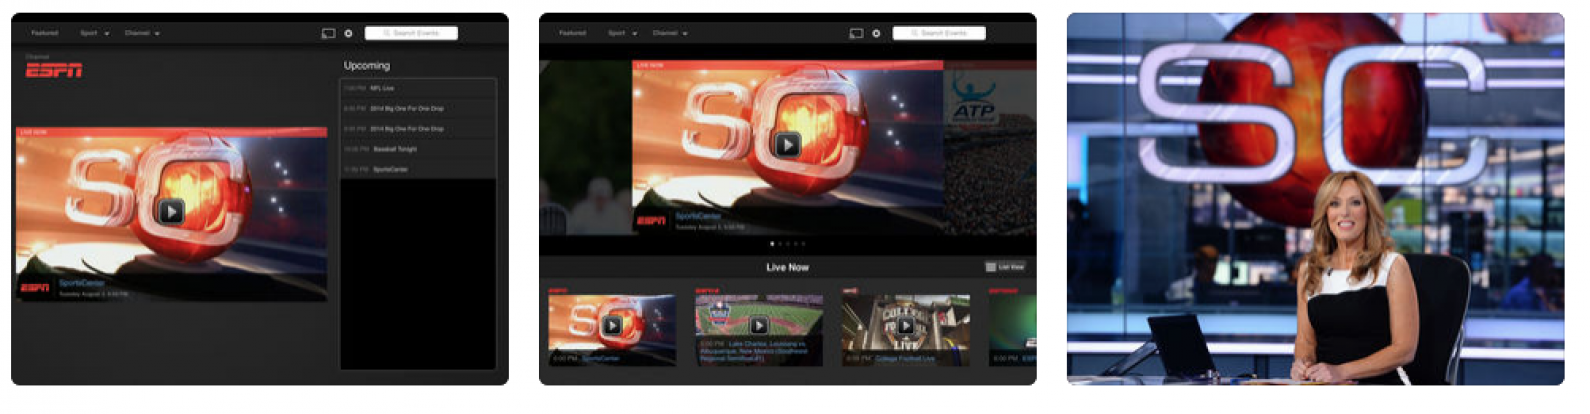 How to Live Stream the NBA Playoffs & Finals without Cable on Your